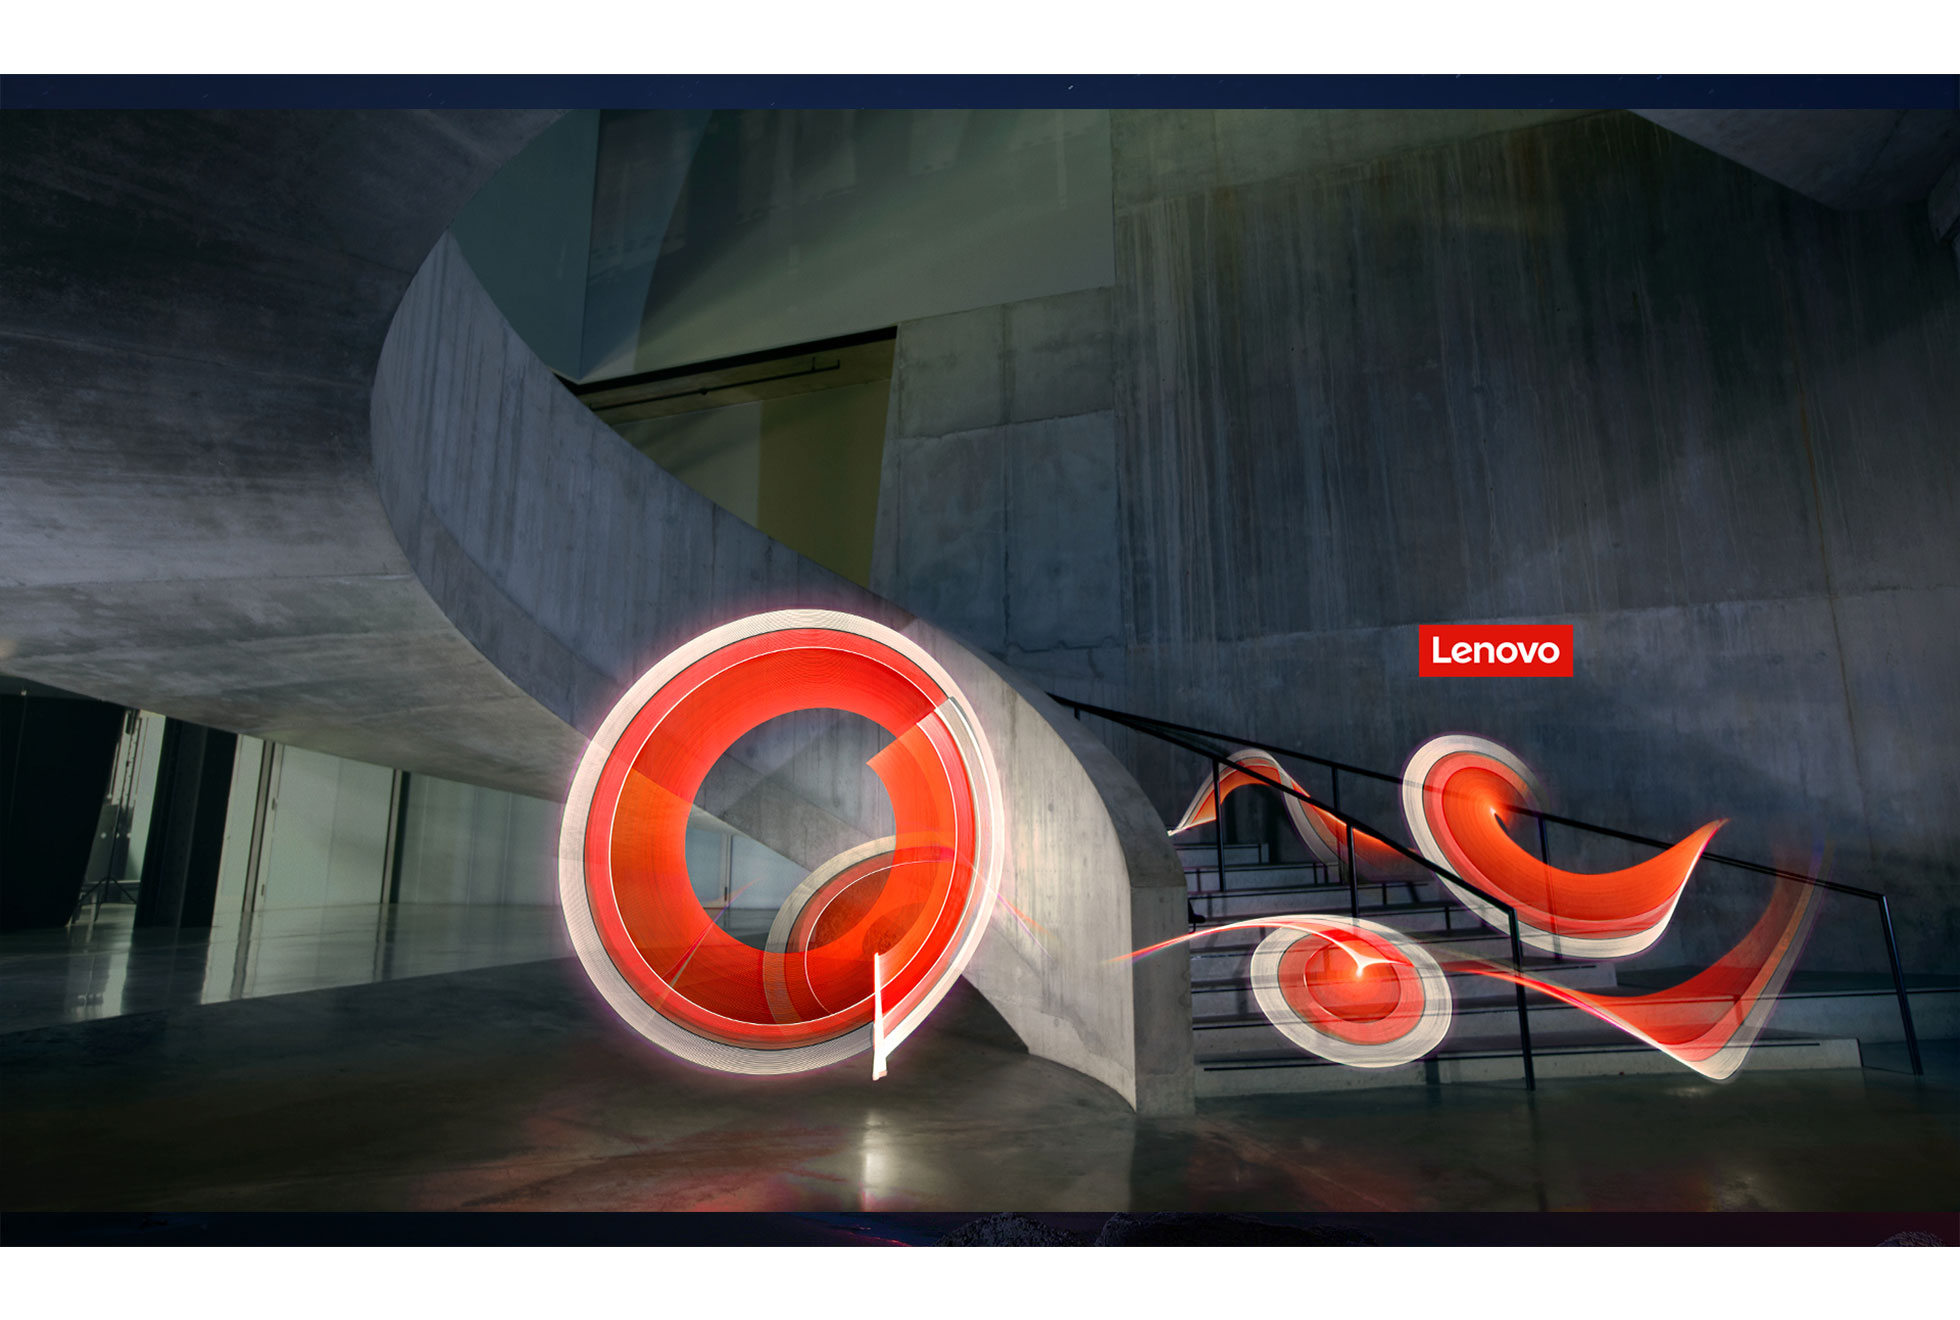 Lenovo-Light-Painting-Backgrounds-by-Sola-Lightbombing-Tate-Modern